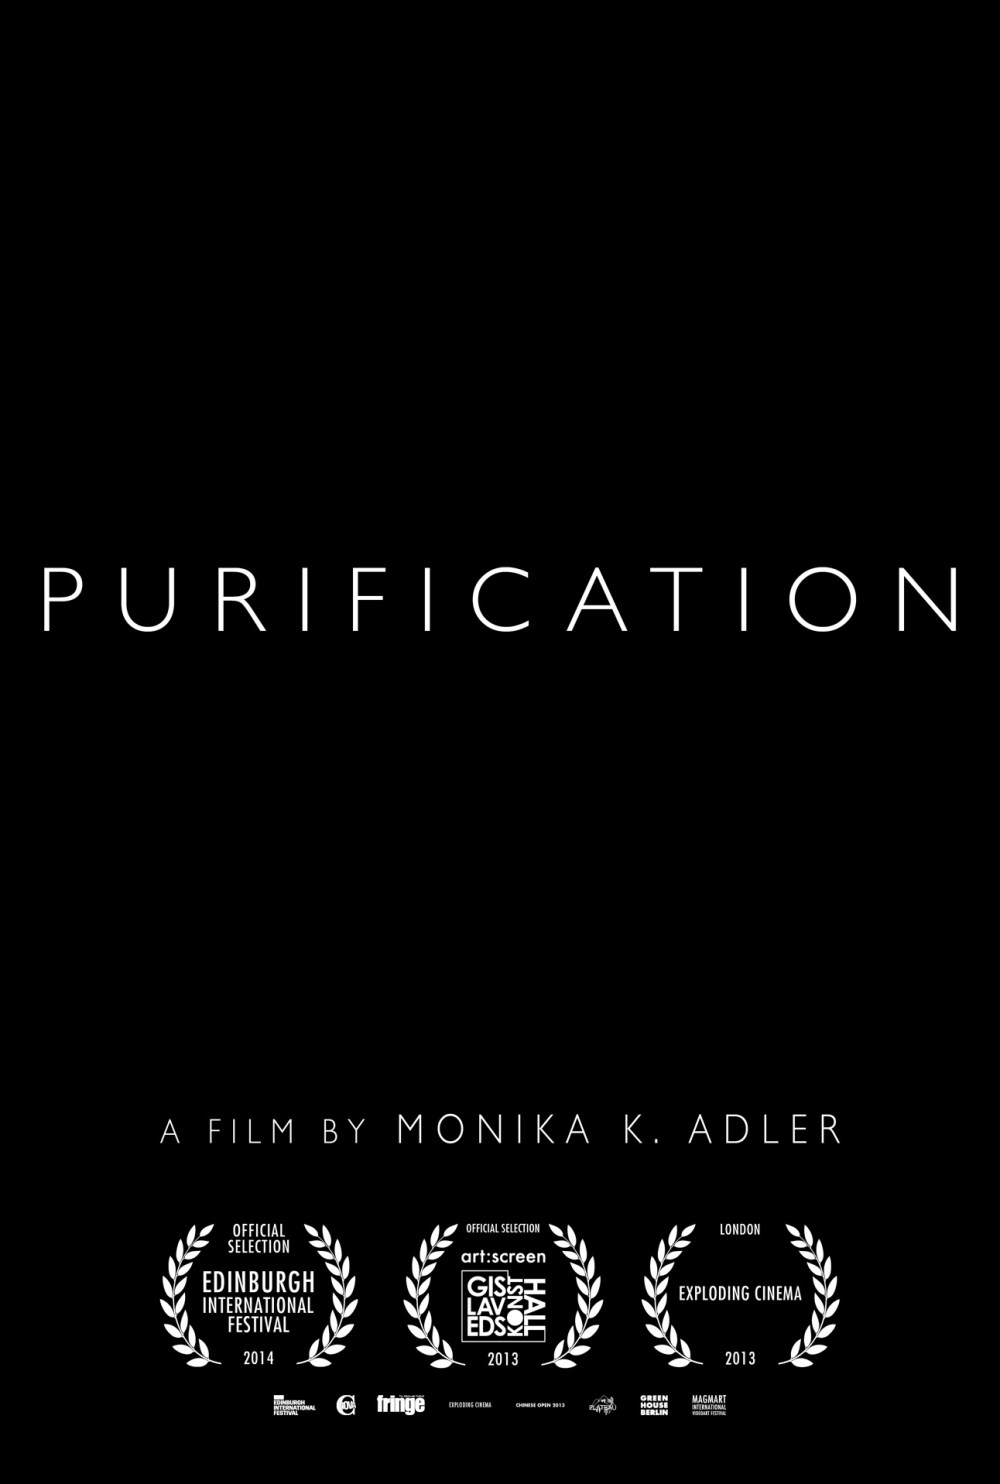 Monika K. Adler, Purification, 2013, film poster, Aeon Rose